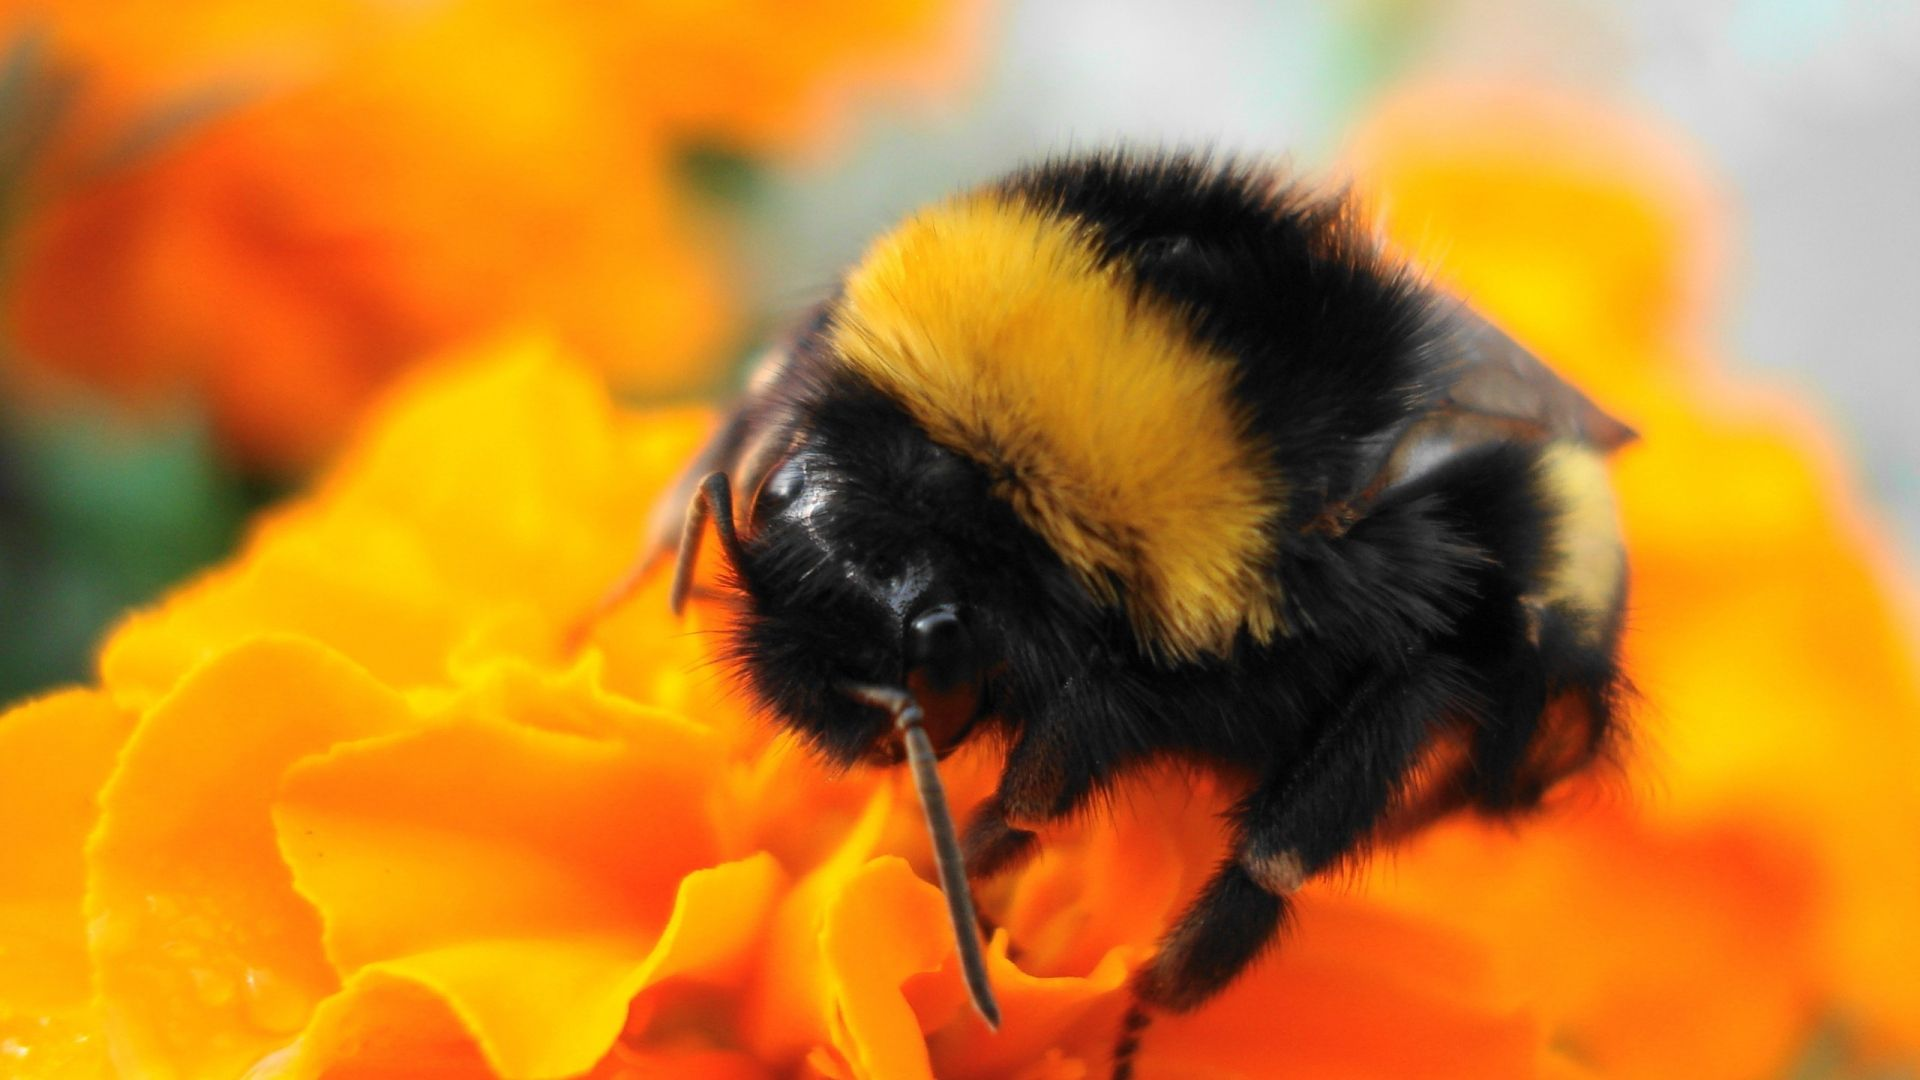 Bumble Bee Insect X Wallpapers bees Pinterest Bumble